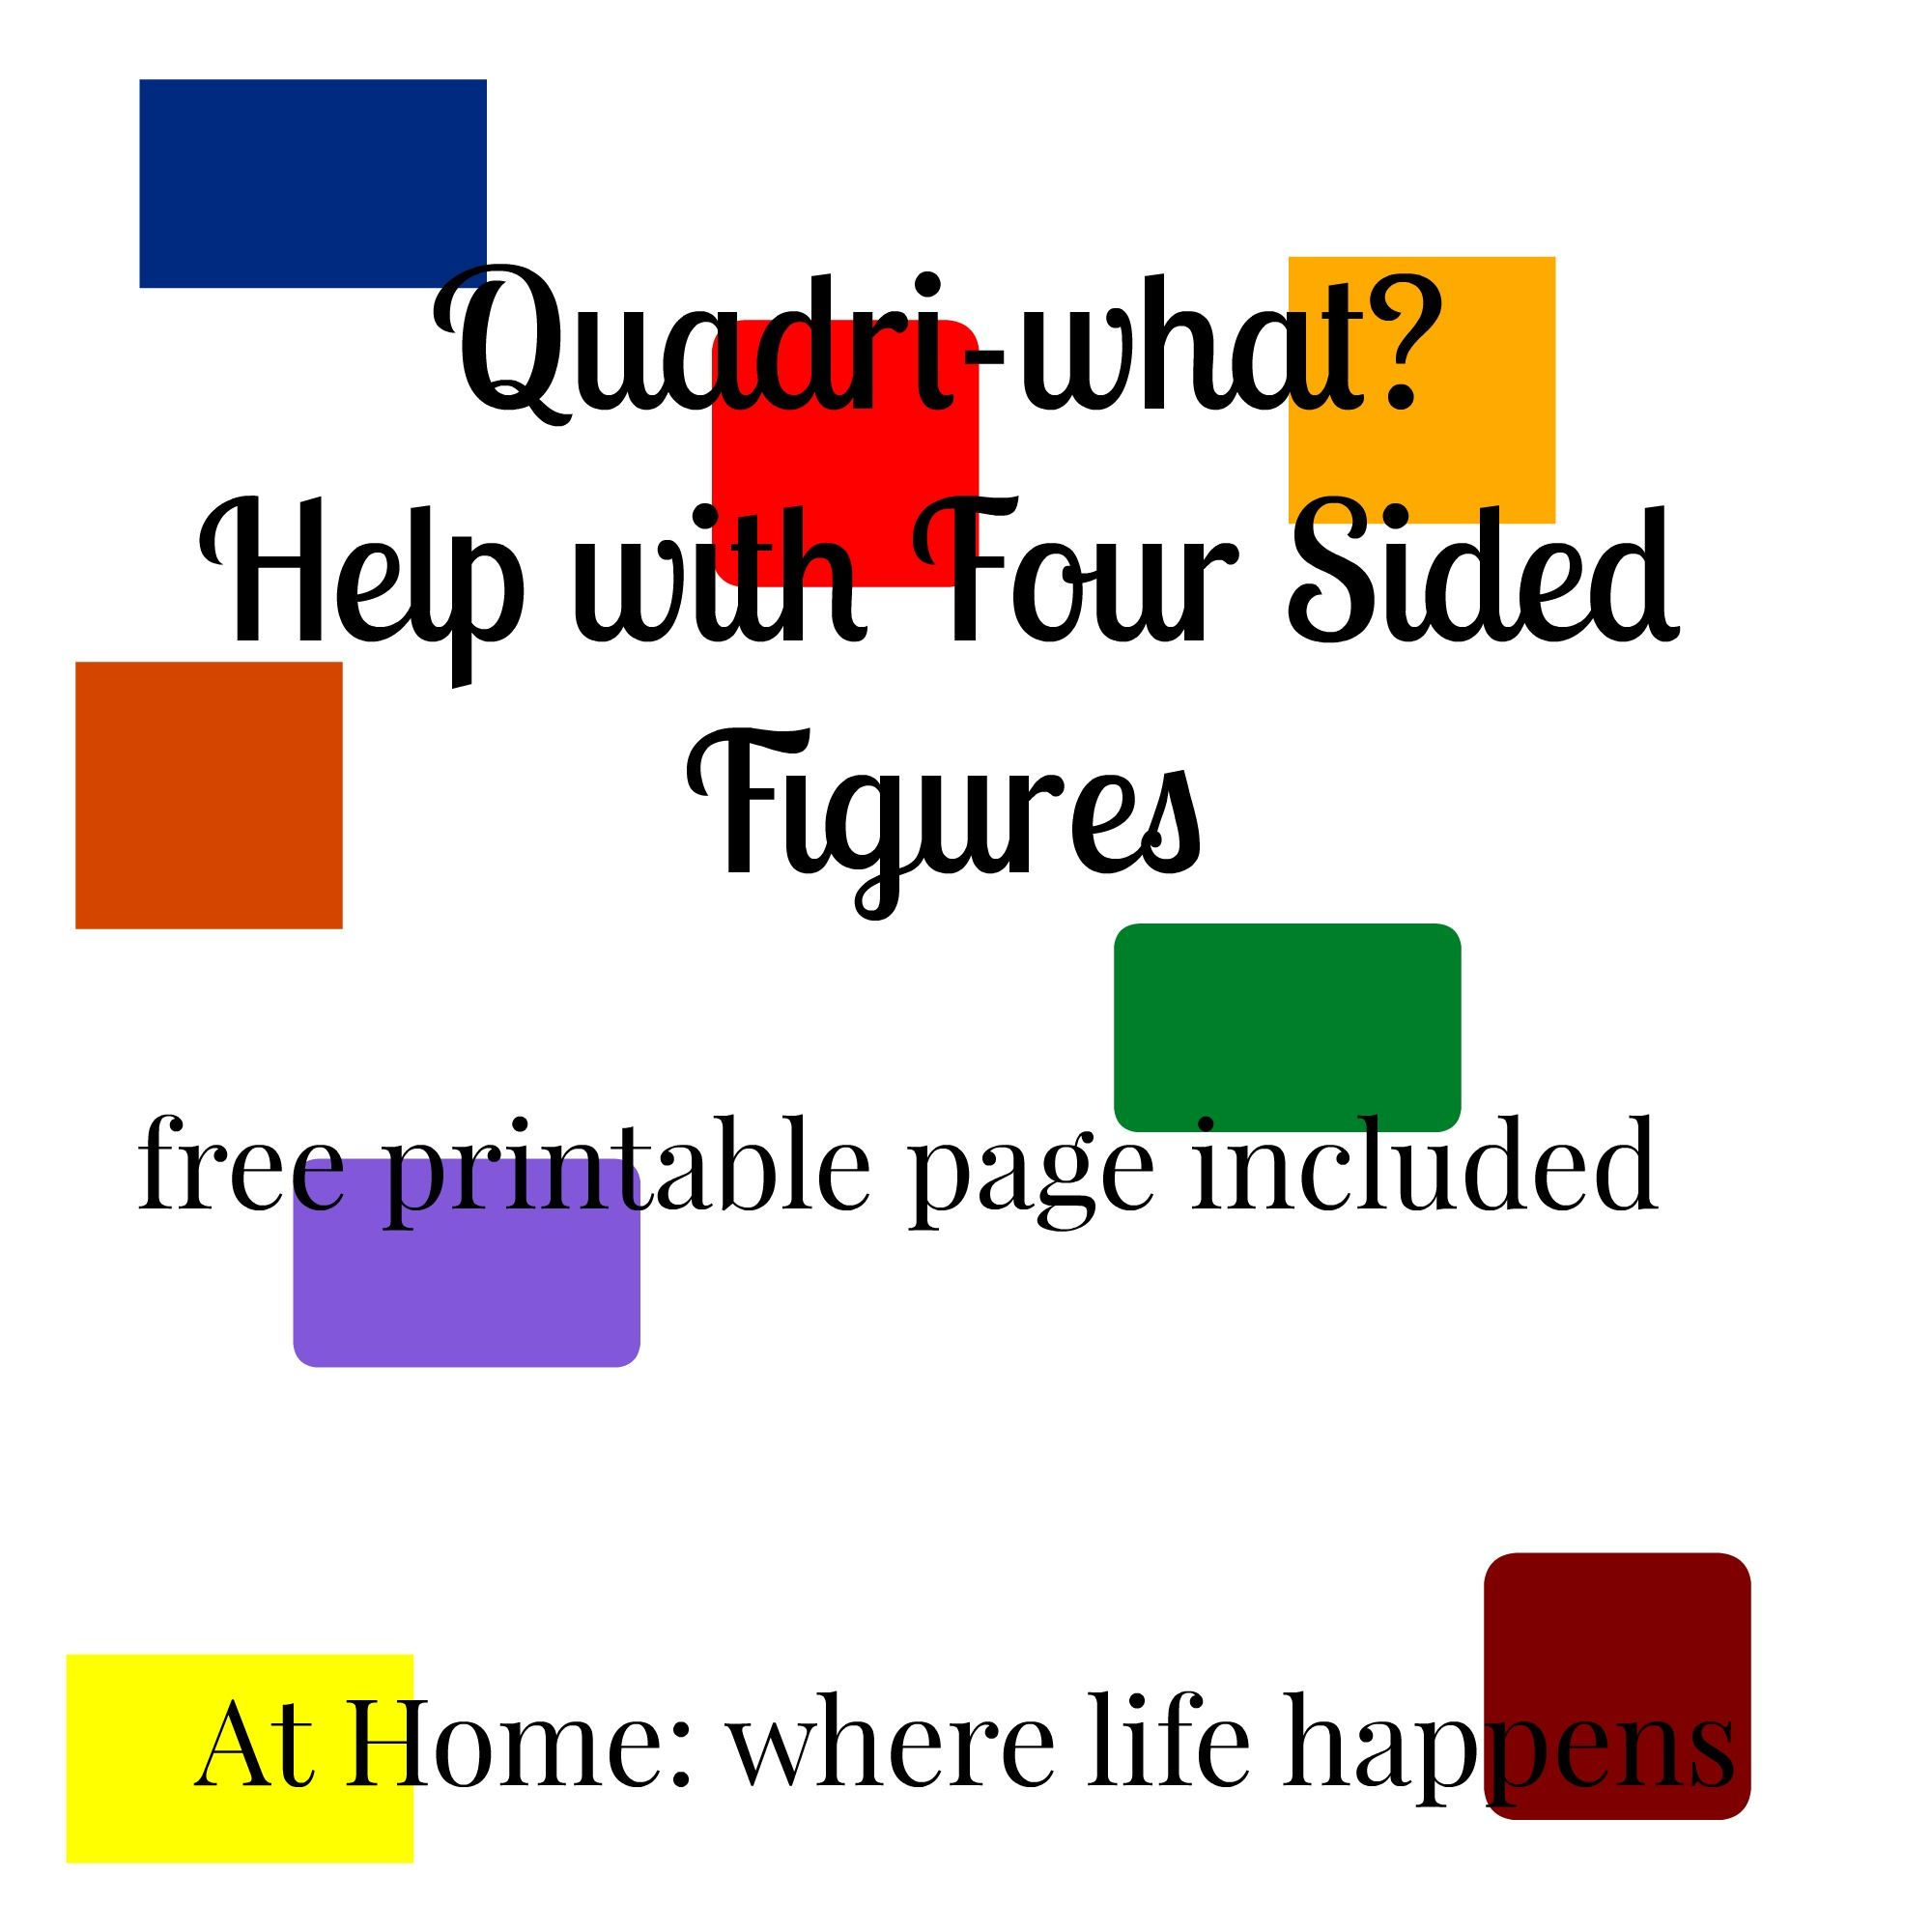 Quadri What Help With Four Sided Figures